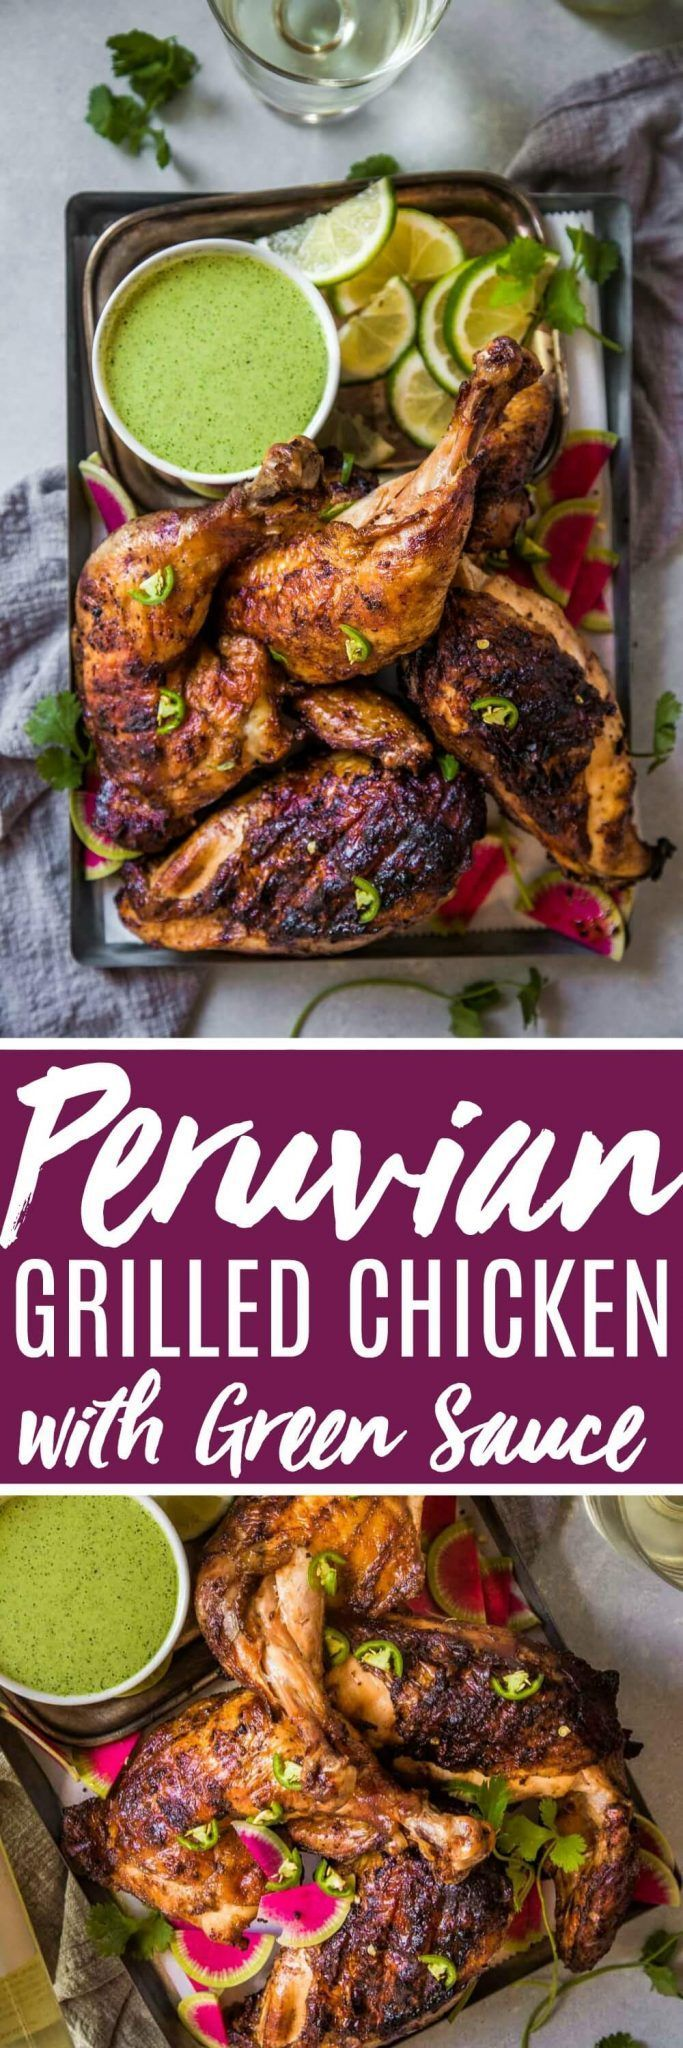 Peruvian Grilled Chicken with Creamy Green Sauce